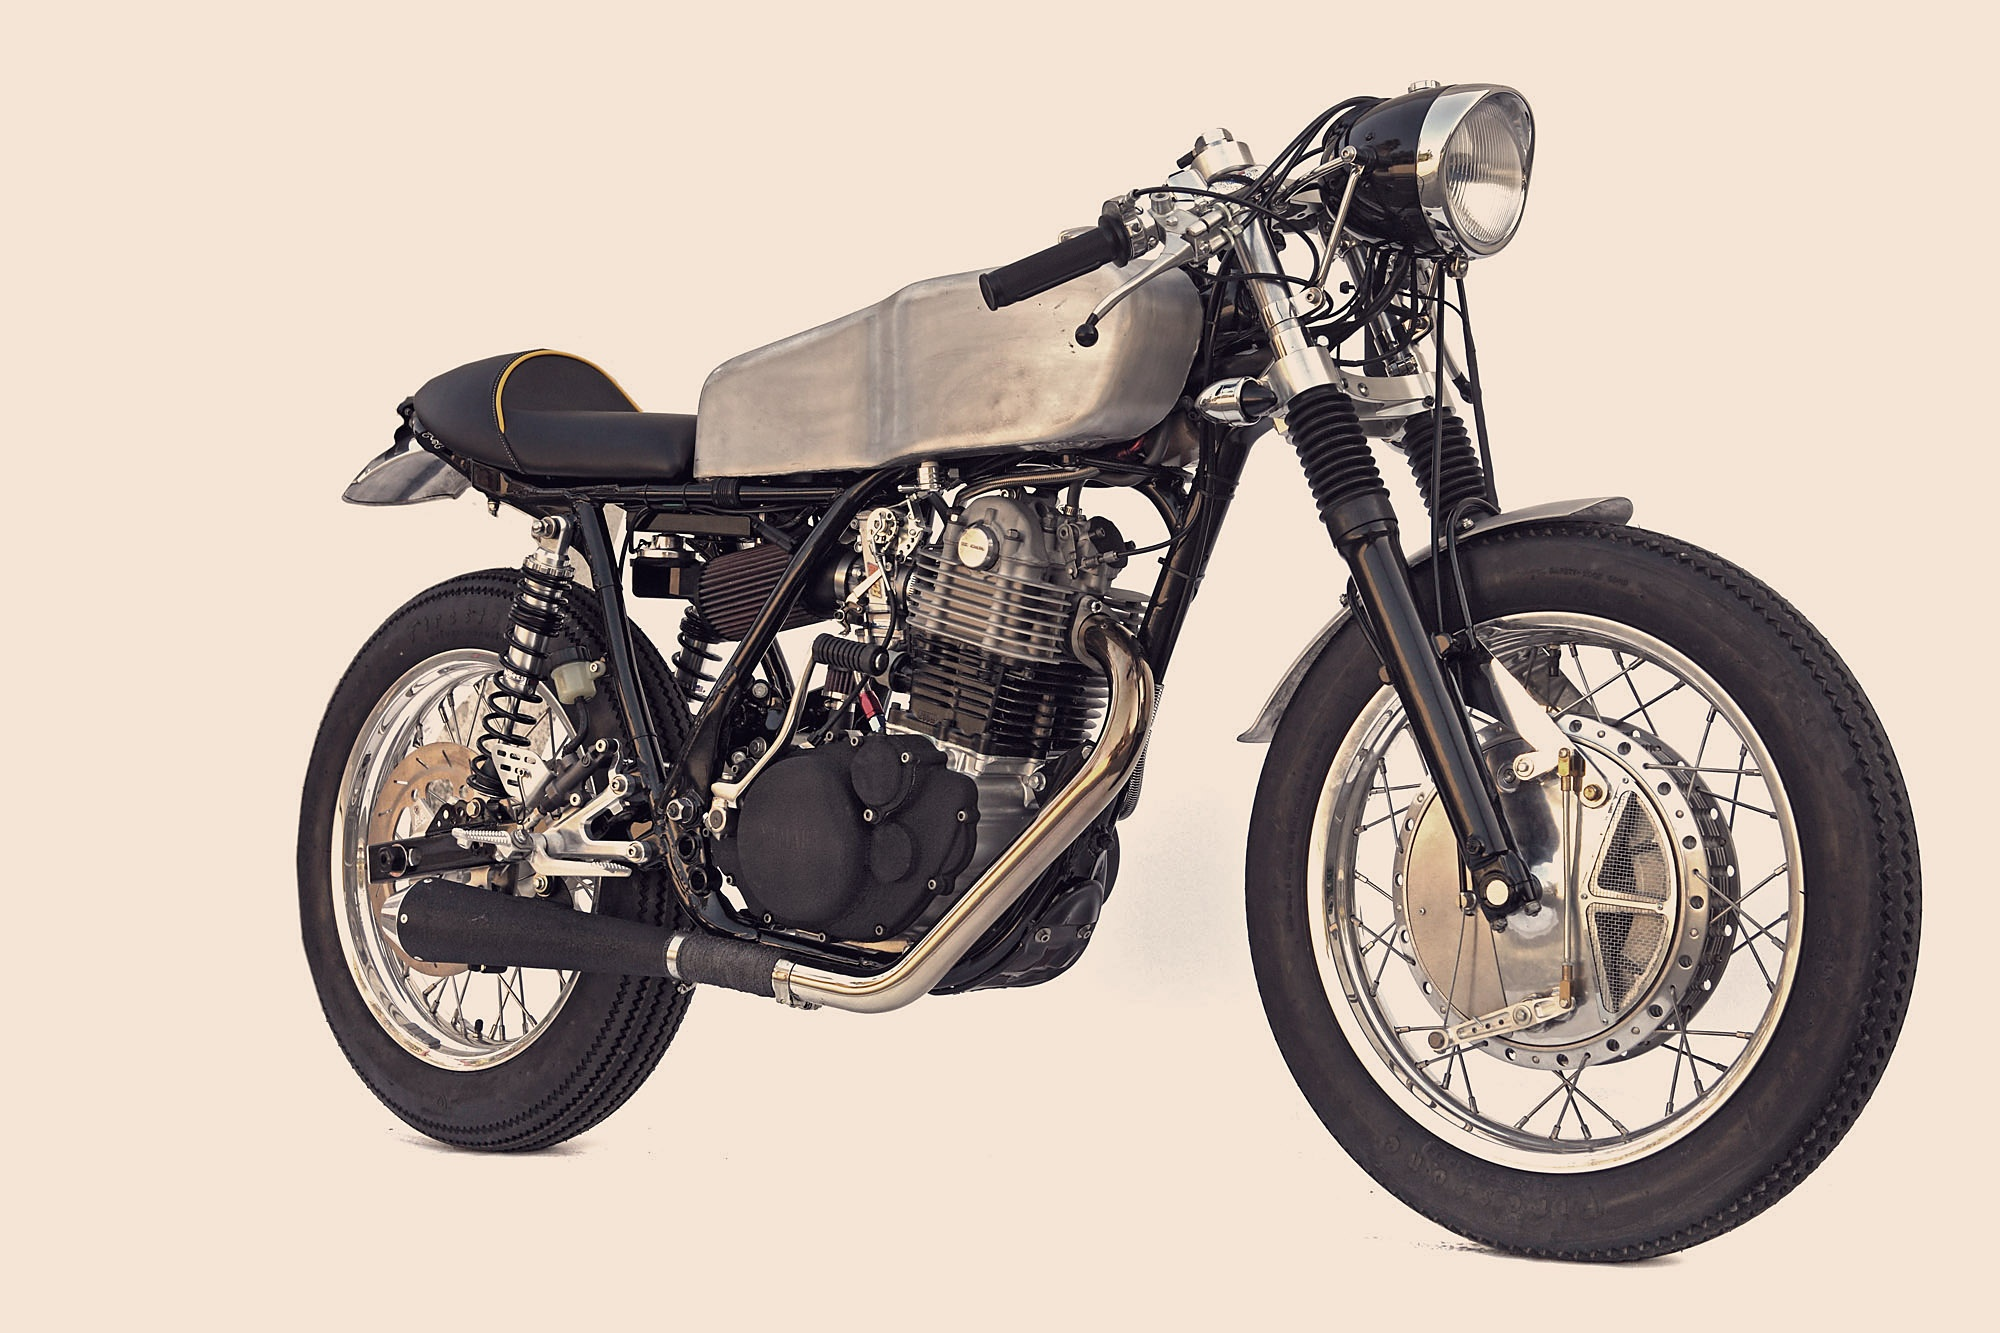 deus ex machina sr500 custom silodrome. Black Bedroom Furniture Sets. Home Design Ideas